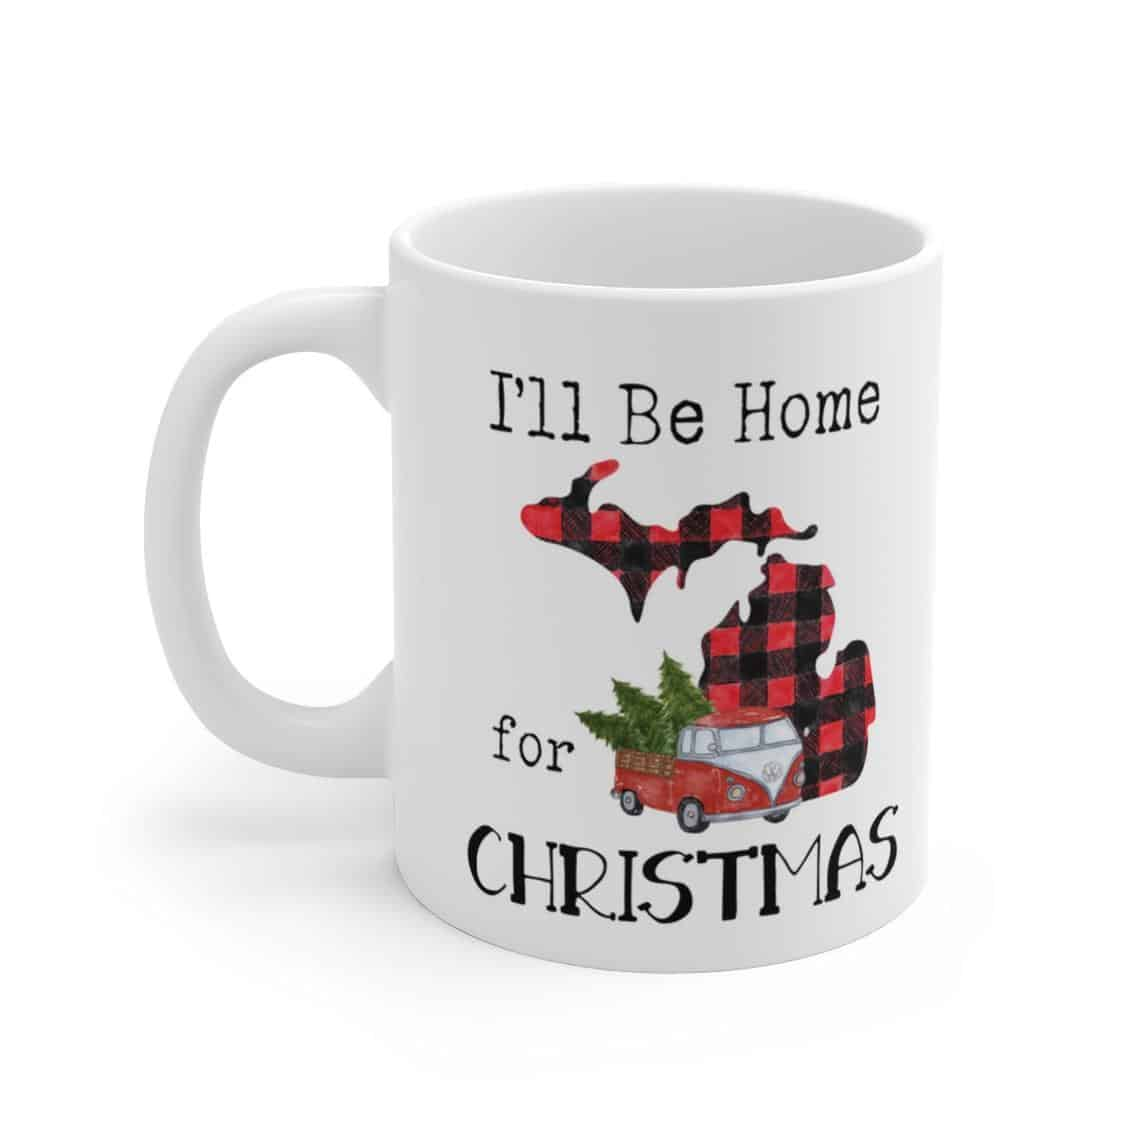 I'll Be Home For Xmas Mug - an ultimate michigan gift idea